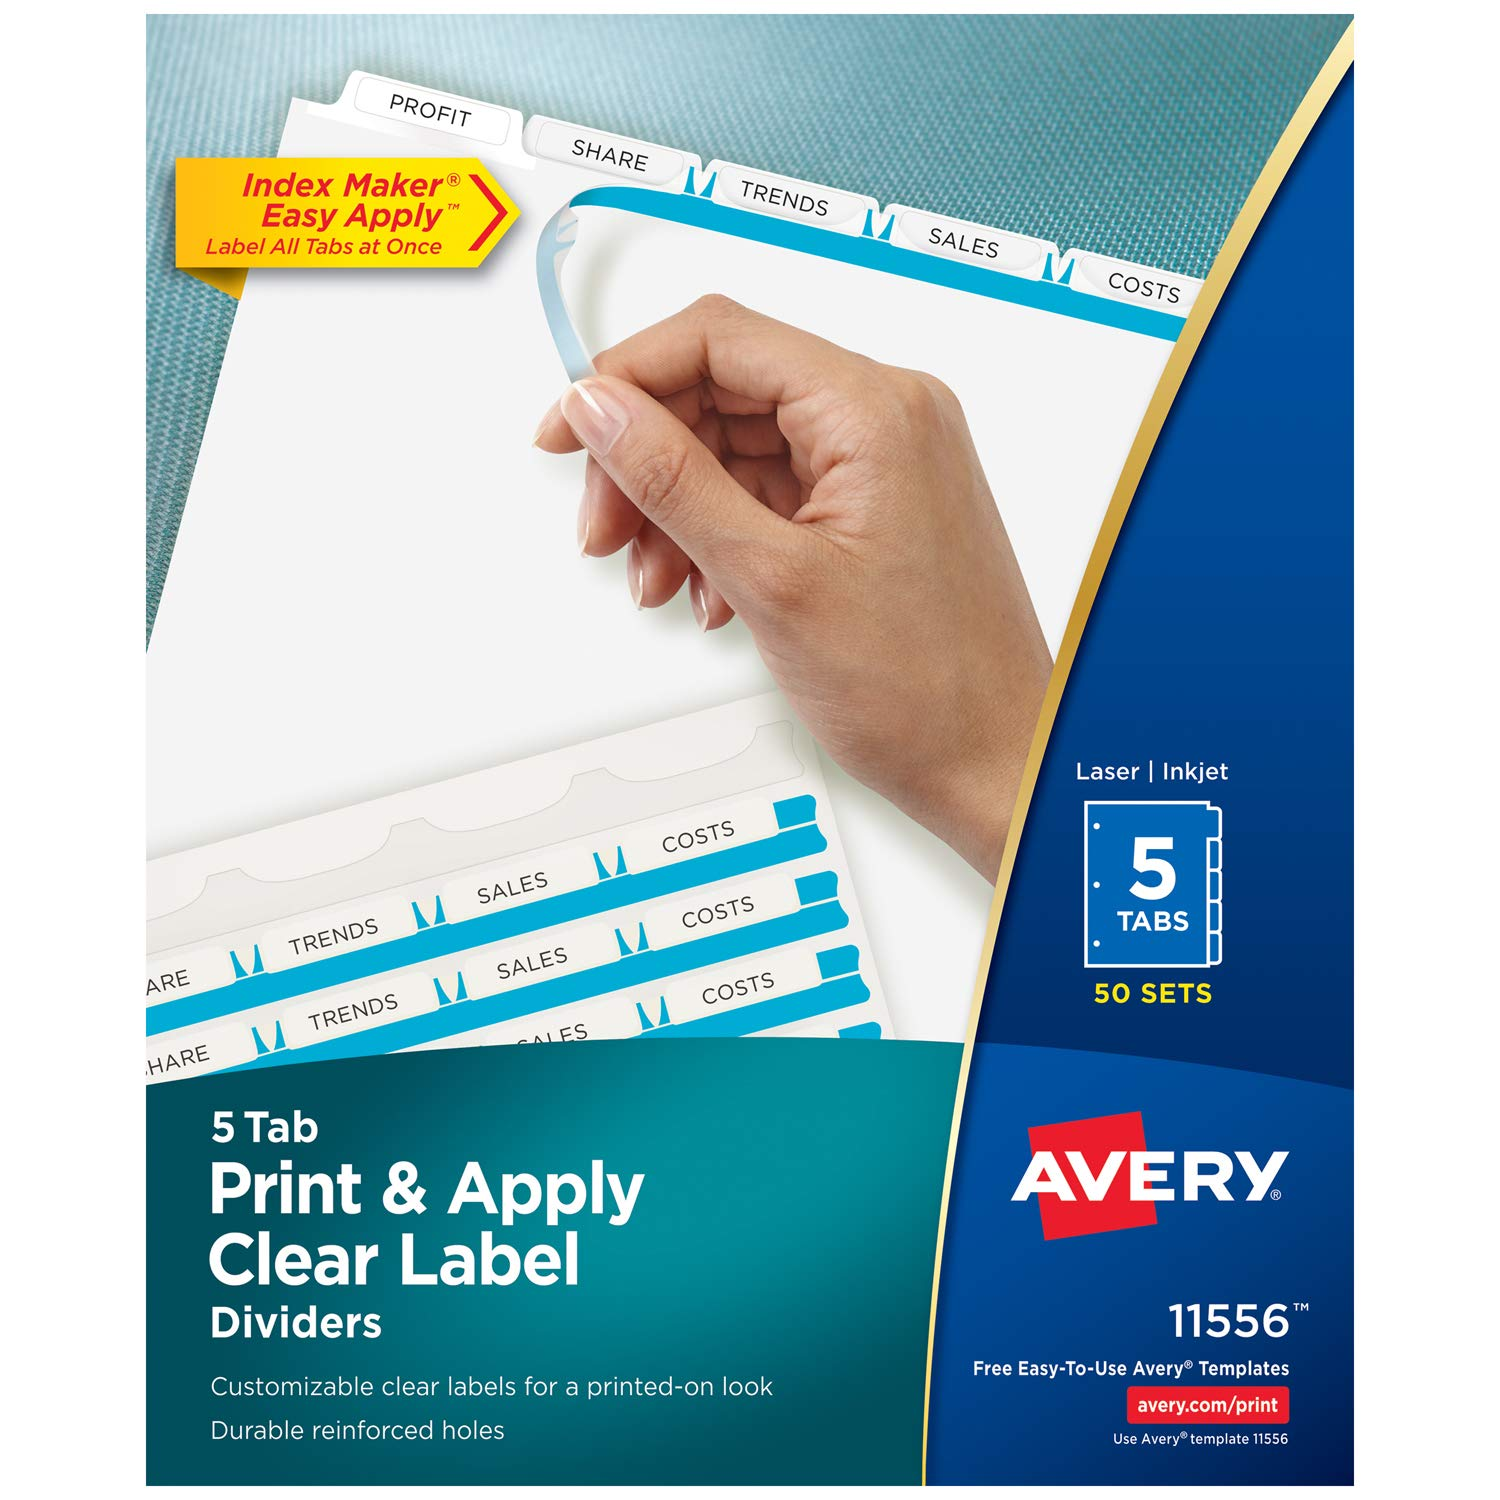 Avery 5-Tab Binder Dividers, Easy Print & Apply Clear Label Strip, Index Maker, White Tabs, 50 Sets (11556)